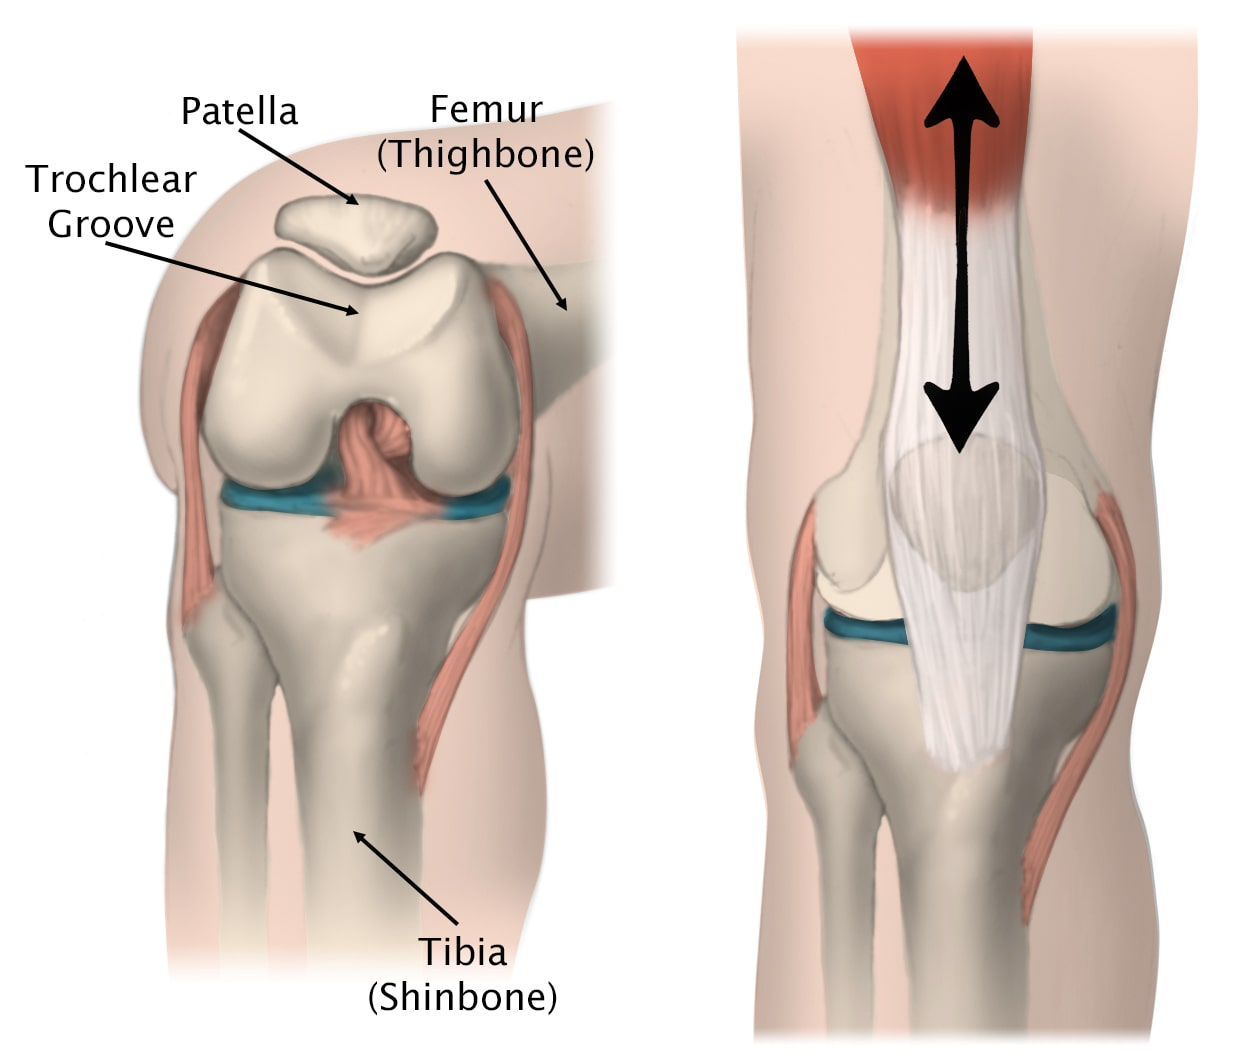 movement of the patella in the trochlear groove